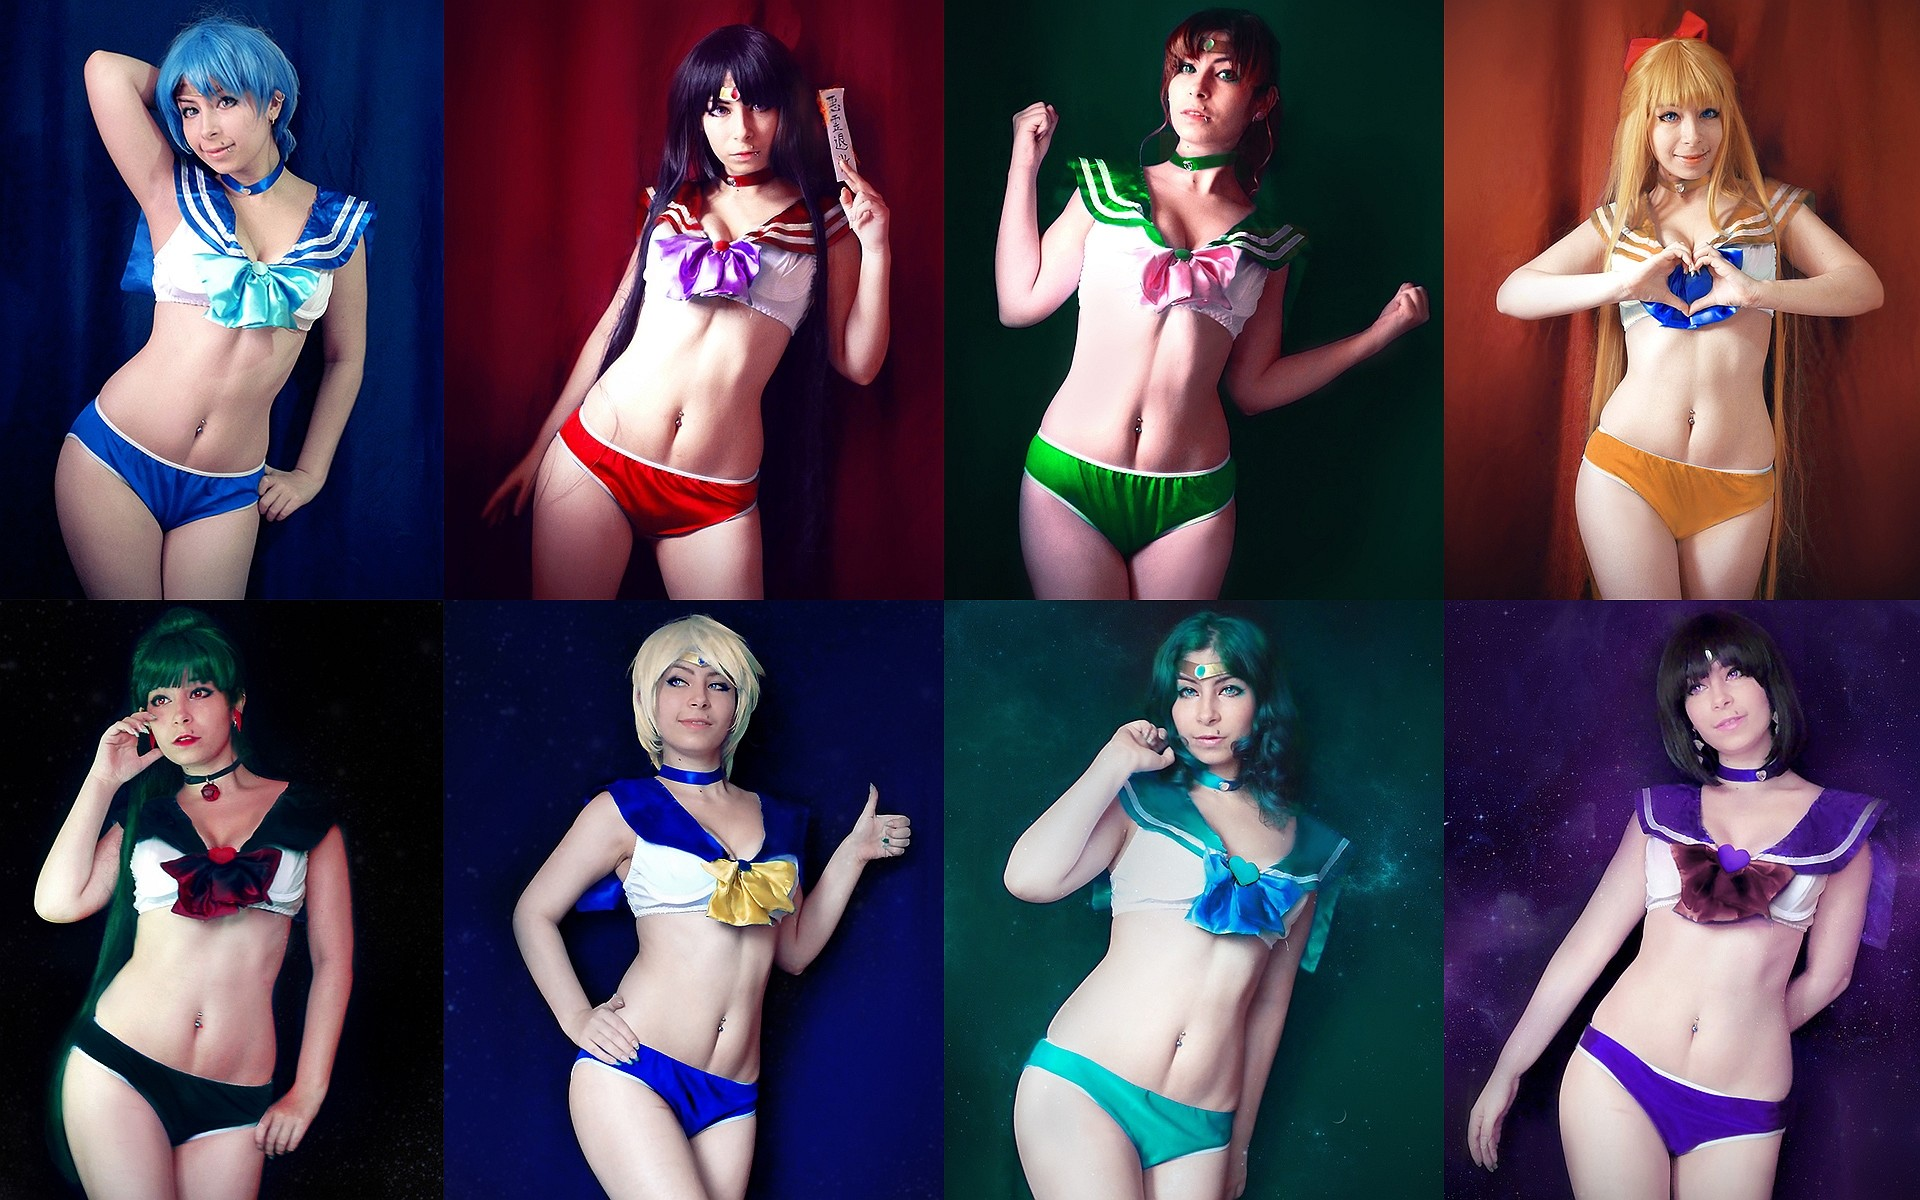 1920x1200 1920x1080 HD wallpaper of a Sailors Mercury, Mars, Jupiter, Venus, Pluto,  Uranus, Neptune and Saturn cosplay from the Sailor Moon anime series by  Mary ...